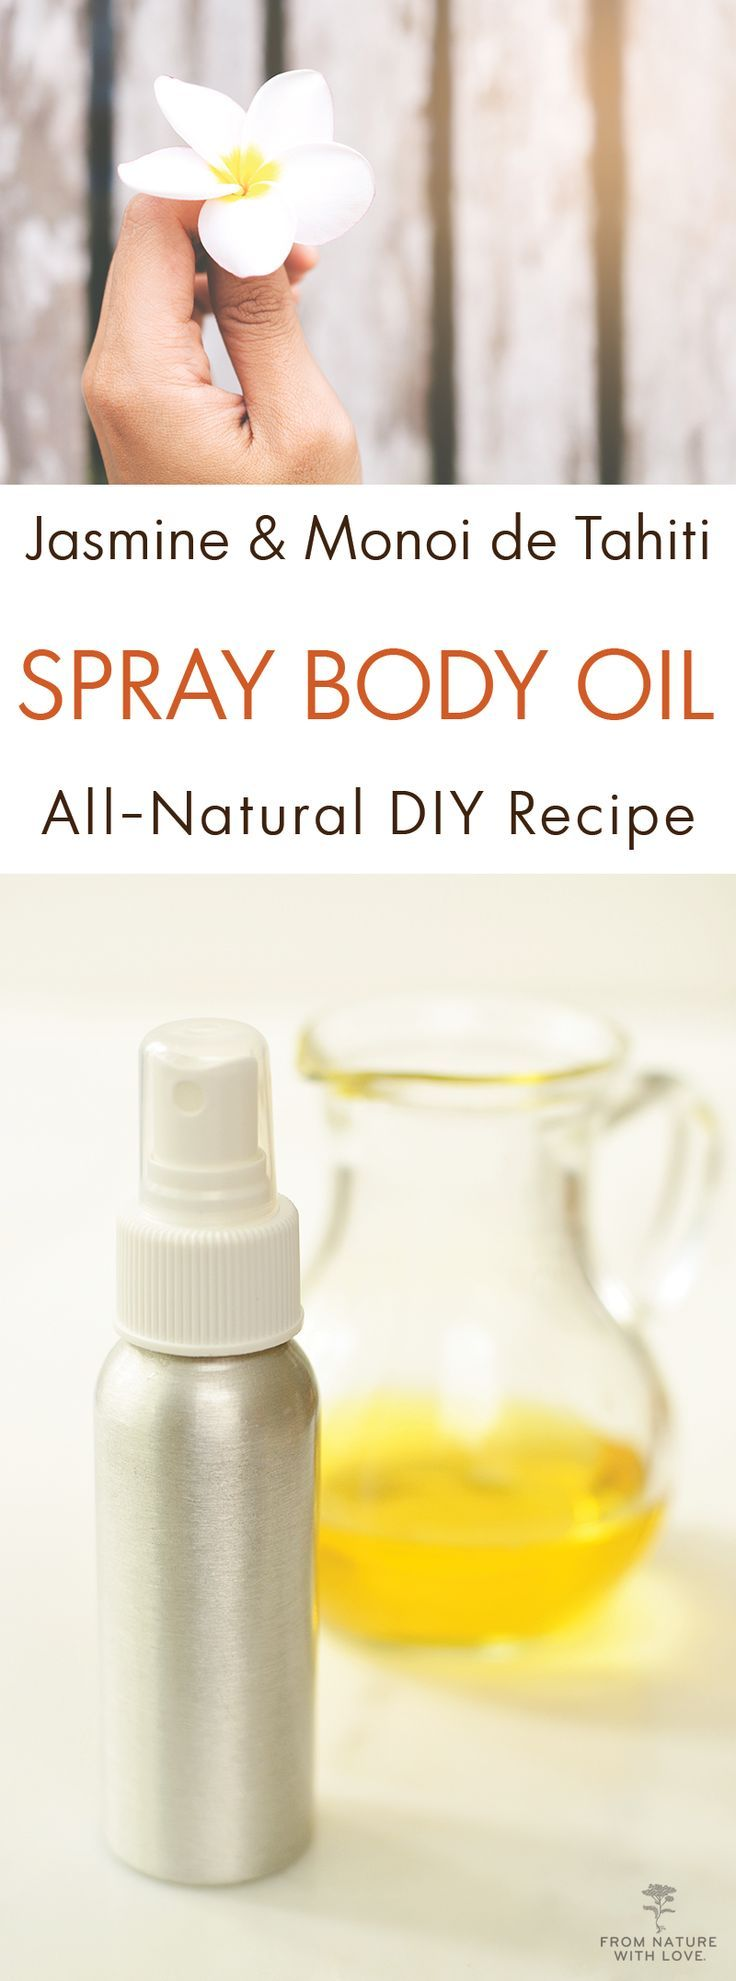 Jasmine and Monoi de Tahiti Spray Body Oil | This simple body oil formula will leave a gentle floral aroma on your skin while providing rich moisturizing benefit. Try making this recipe for yourself or as a handmade Mother's Day gift.